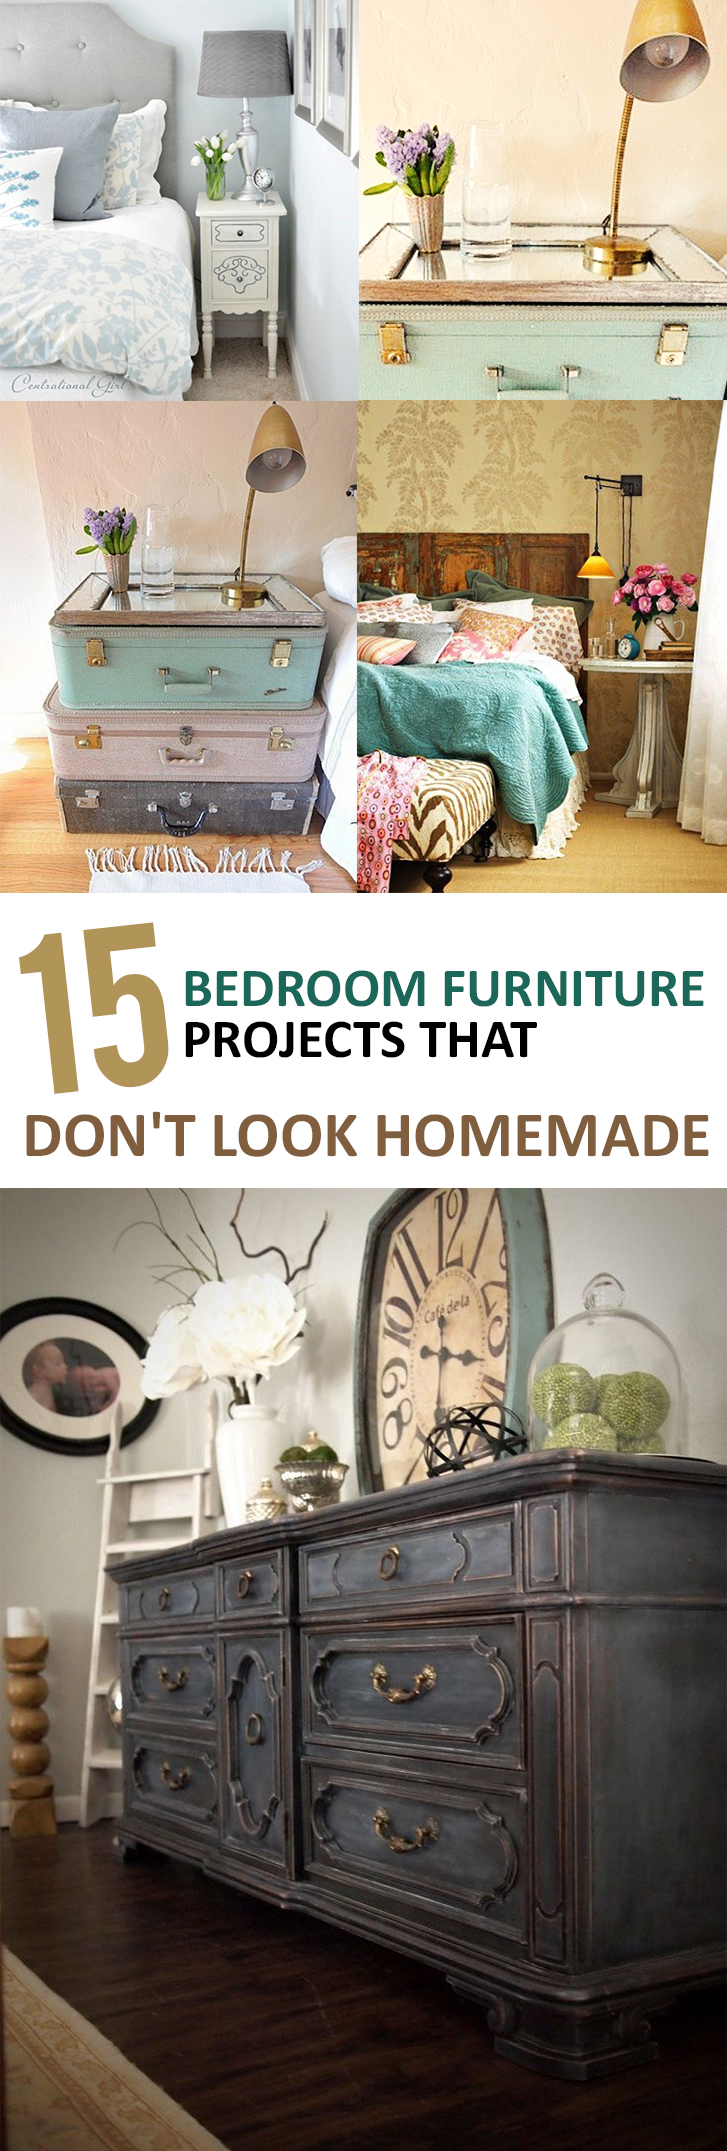 15 bedroom furniture projects that don 39 t look homemade. Black Bedroom Furniture Sets. Home Design Ideas